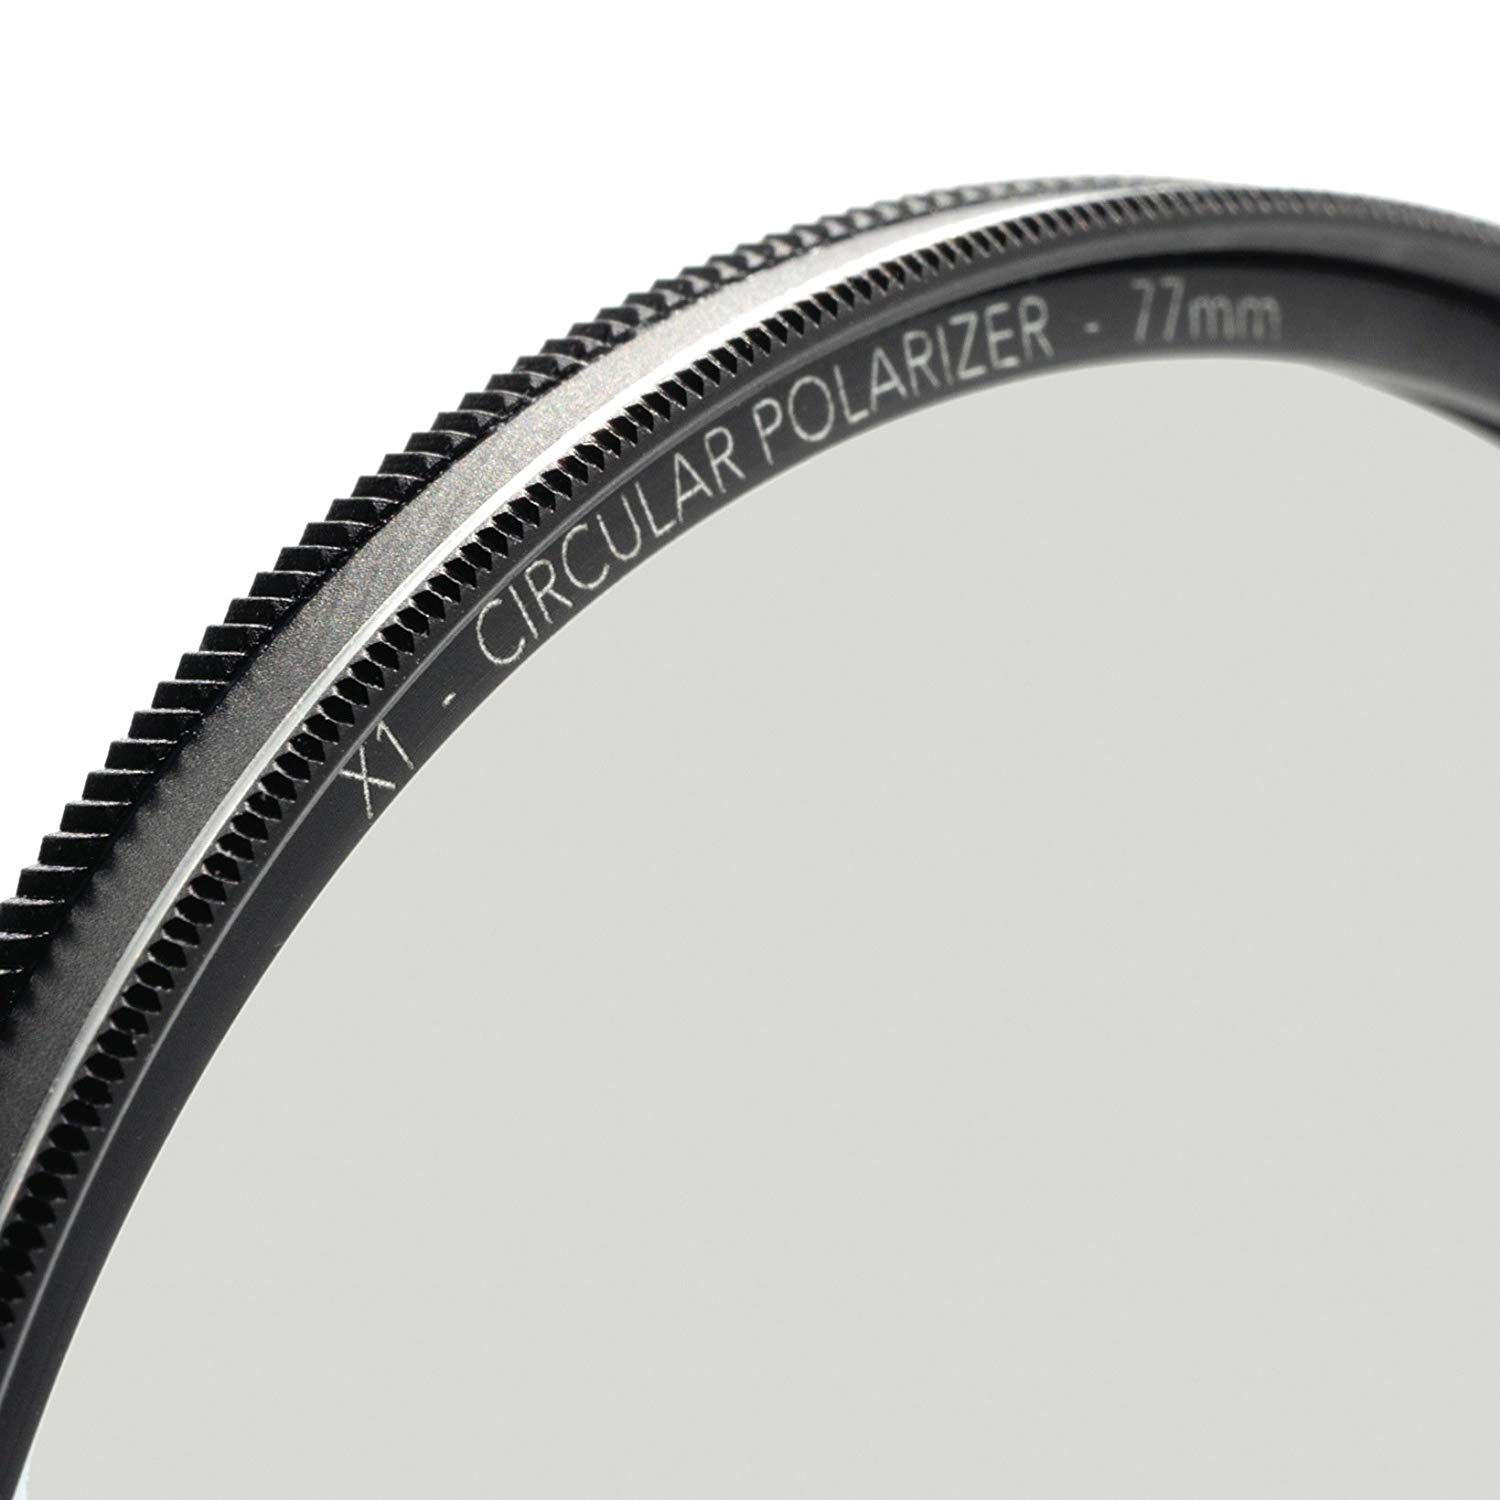 95mm X1 Circular Polarizer, MRC8, Ultra-Slim, Weather Sealed + Free Mircofiber Lens Cloth by Breakthrough Photography